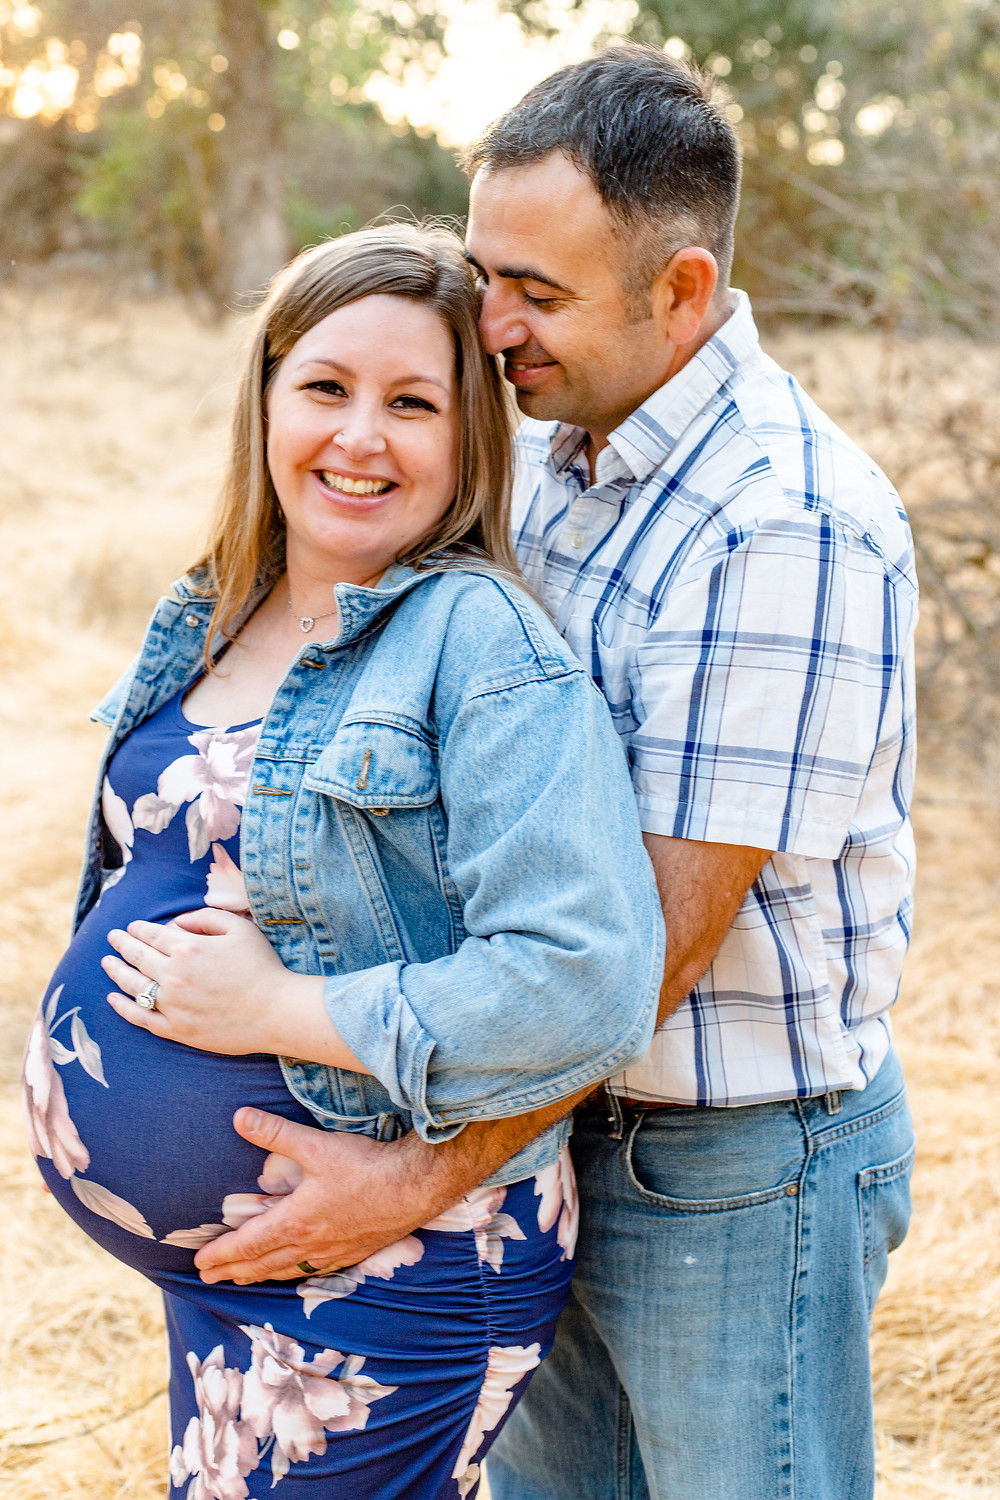 Lifestyle session by Clovis family and maternity photographer Ashley Norton.